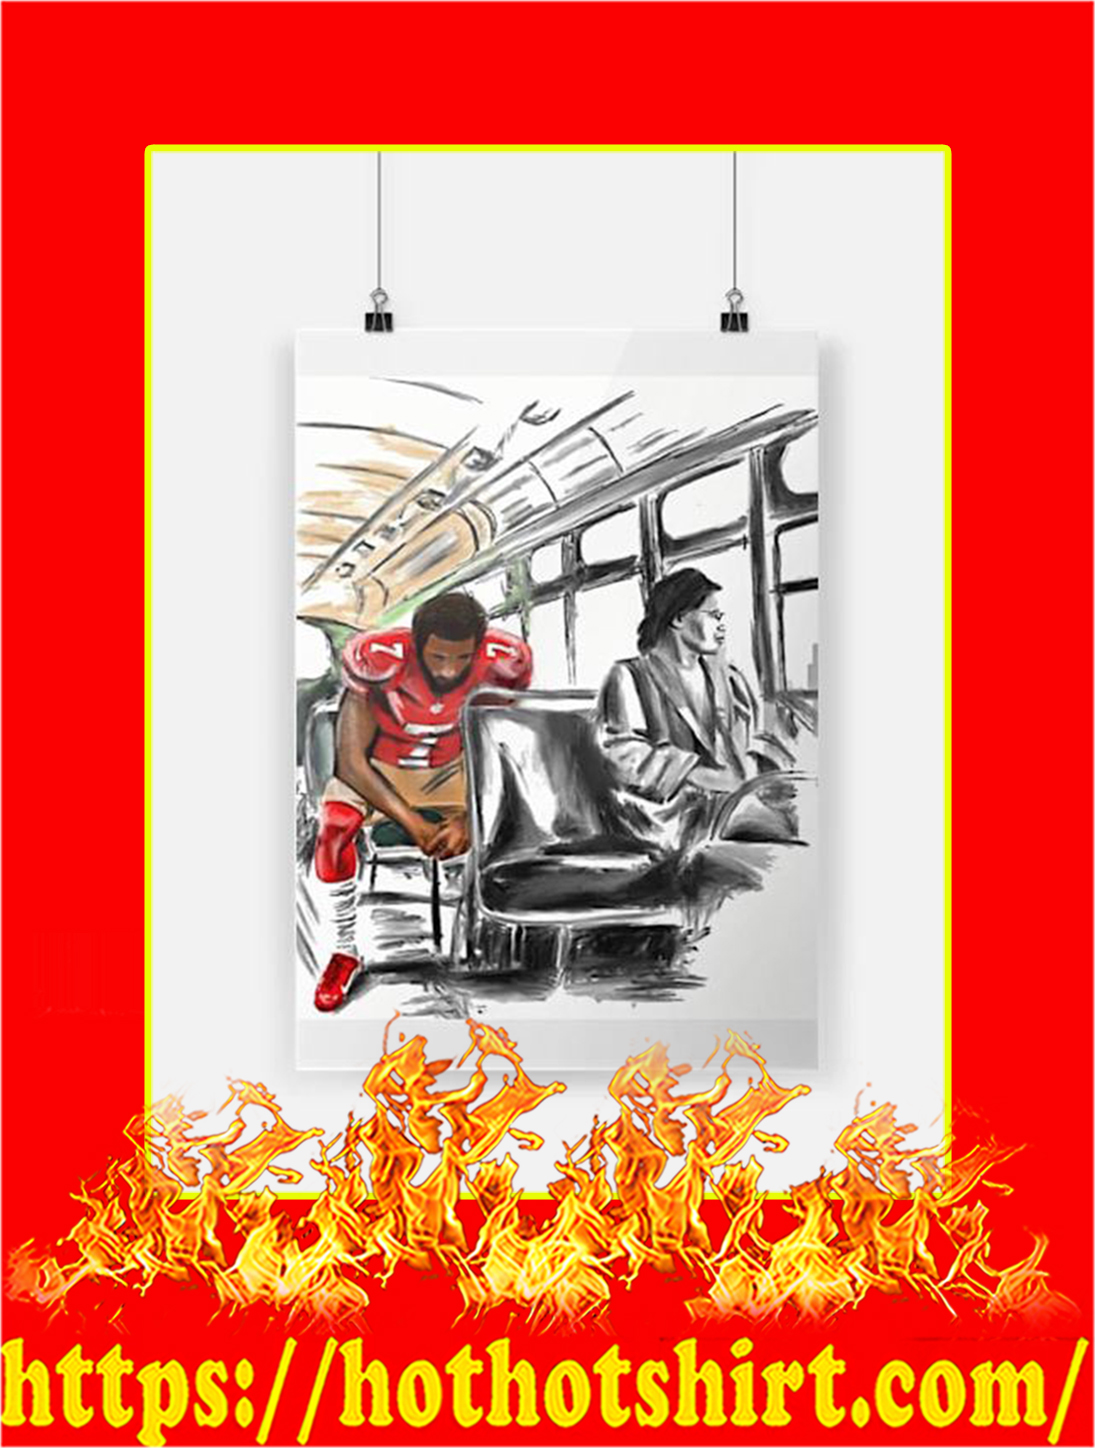 Rosa Parks And Colin Kaepernick On The Bus Poster - A2